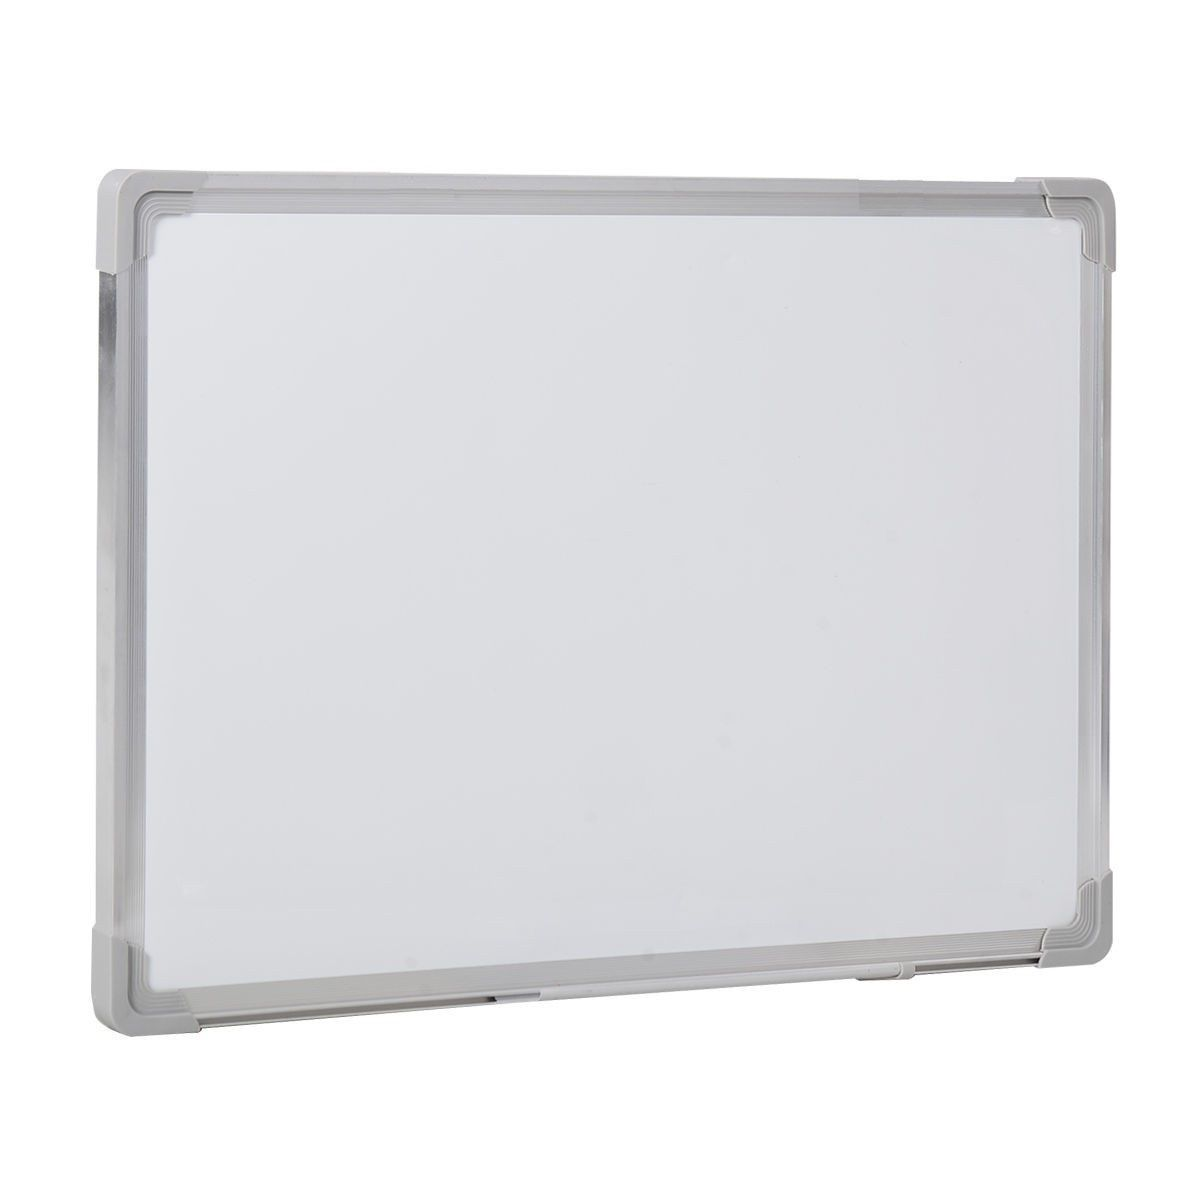 Aluminum Frame Notice Board Magnetic Home School Office